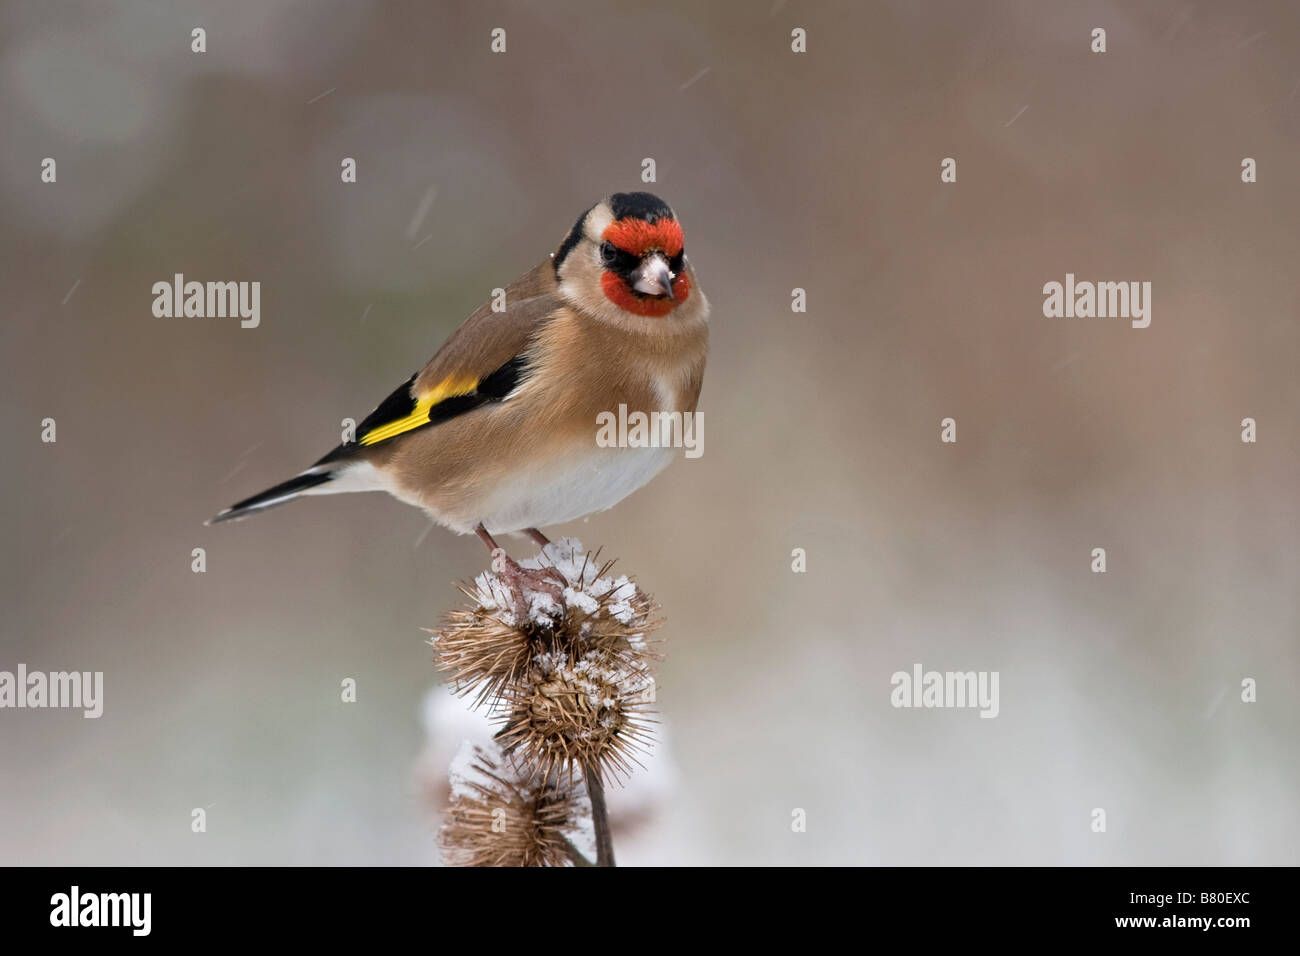 Goldfinch on thistle with snow - Stock Image